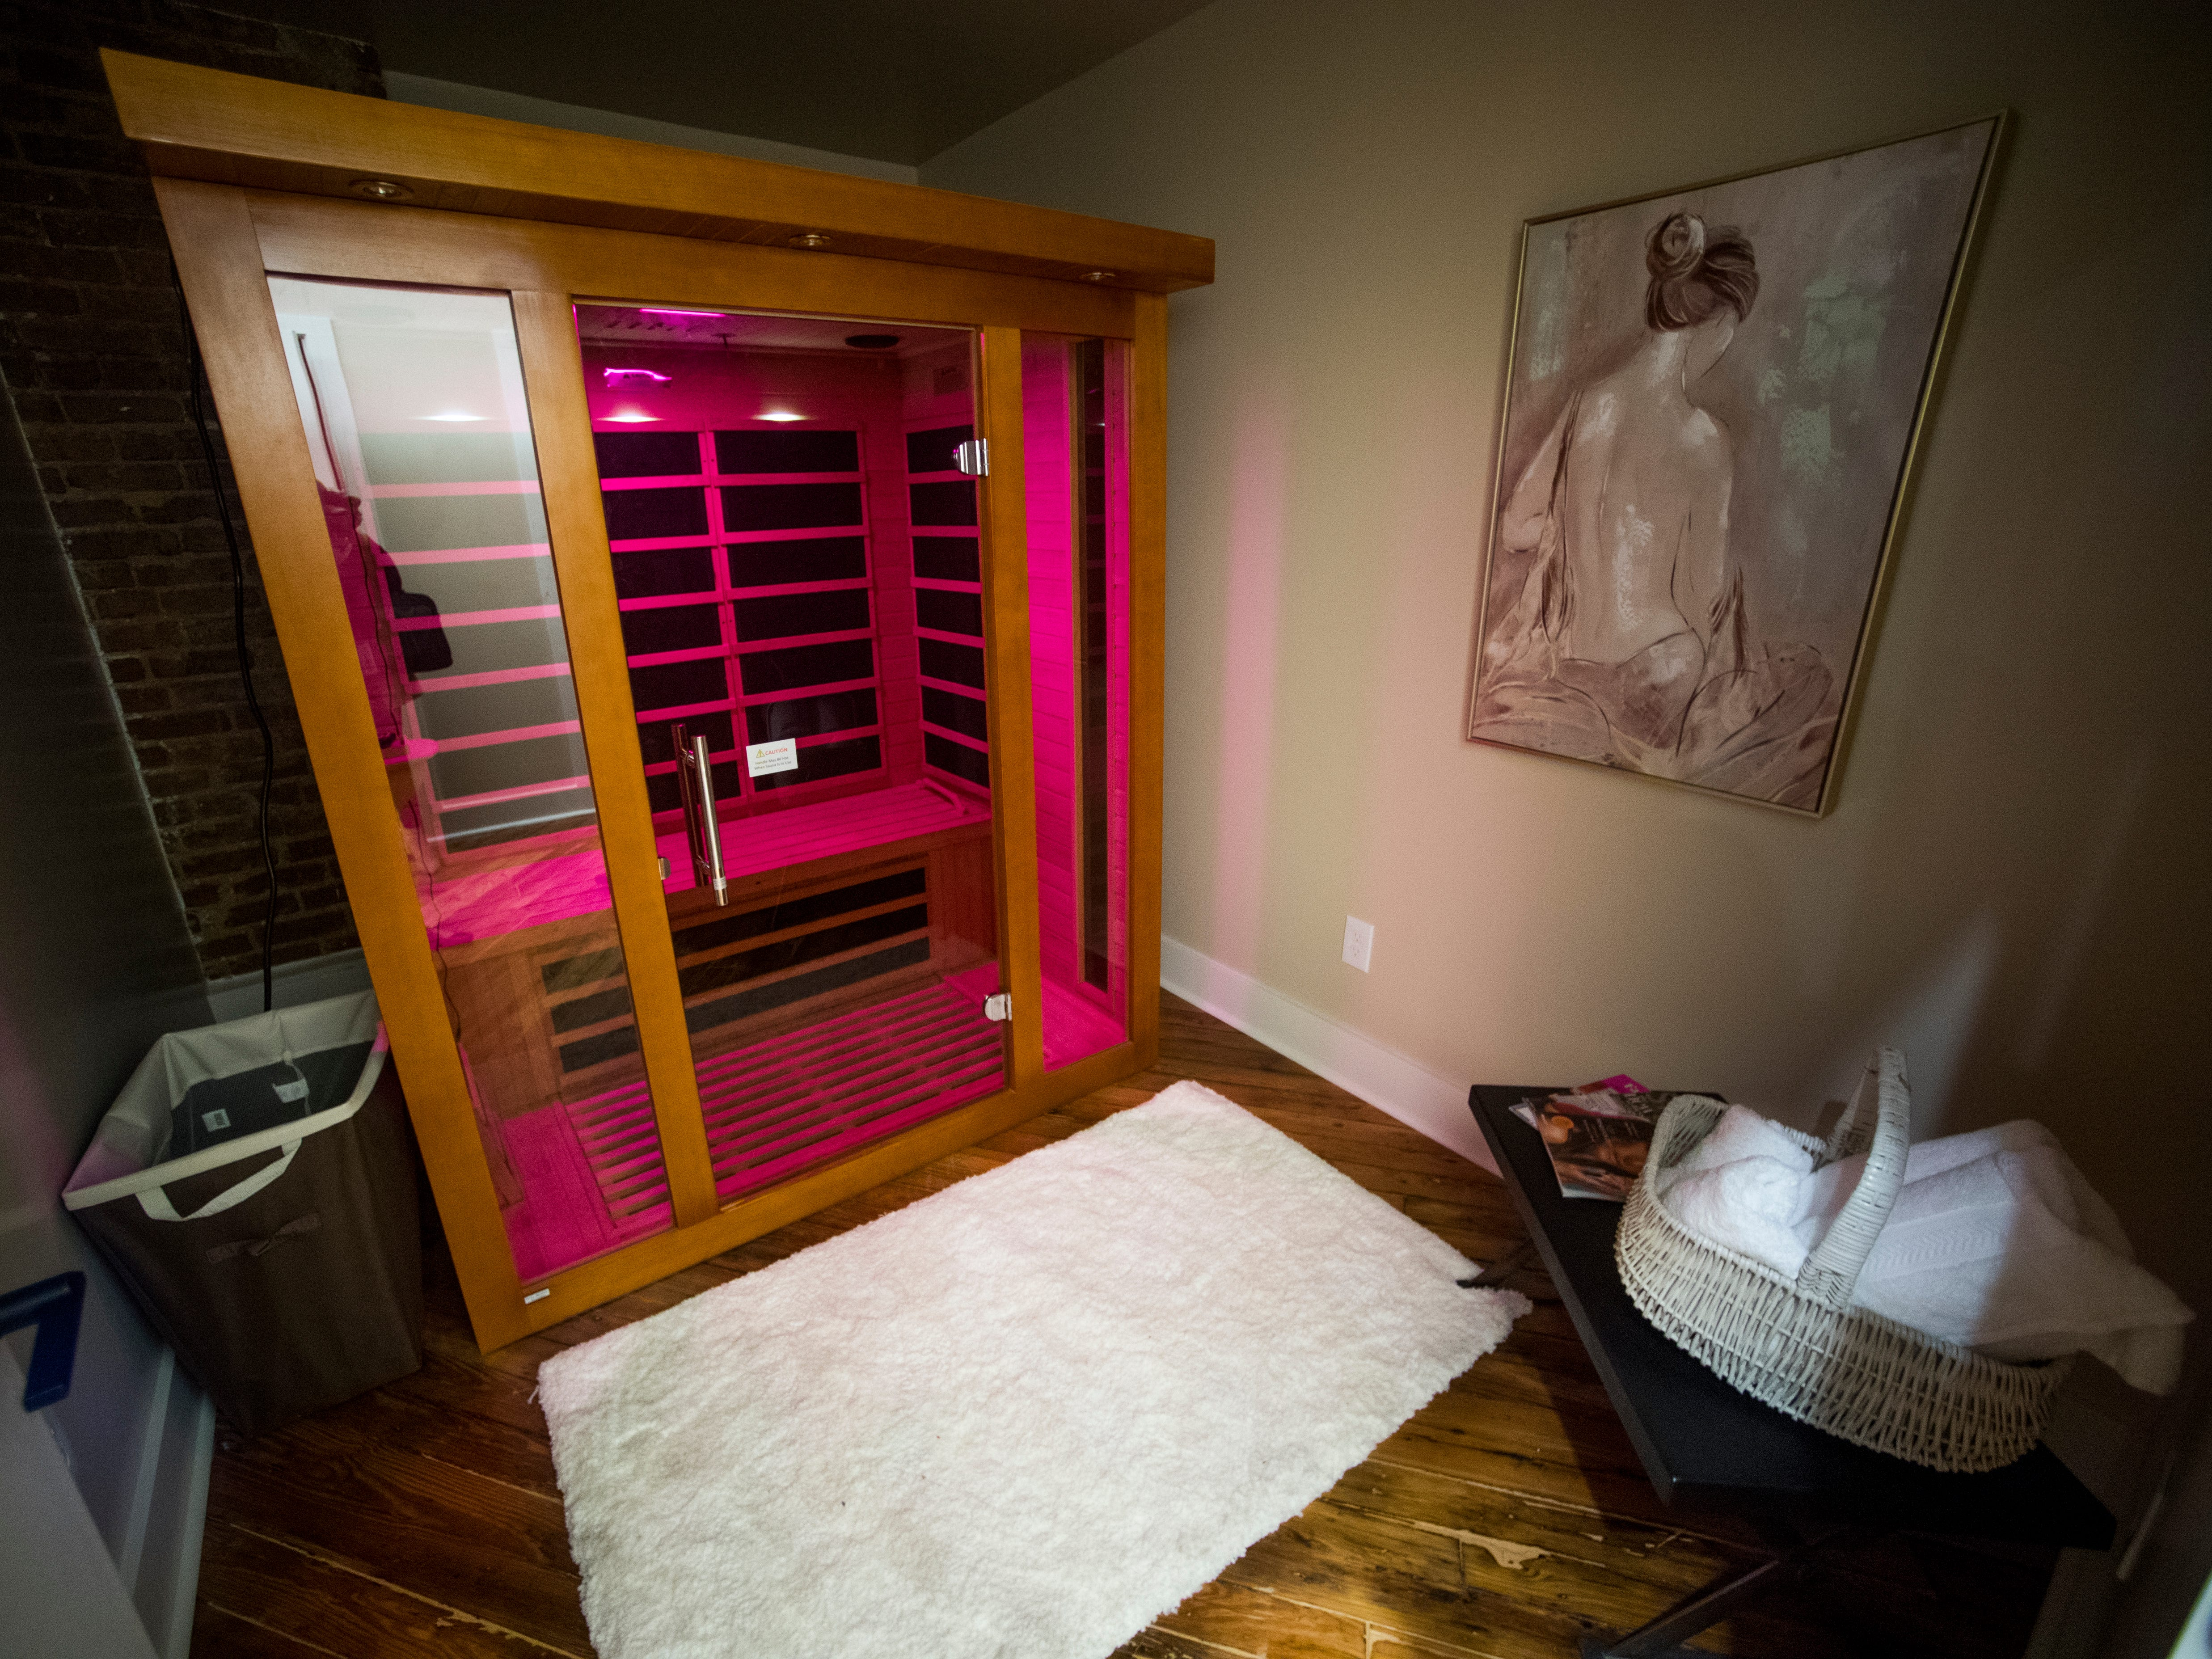 The infrared sauna room at Old City MedSpa in downtown Knoxville on Monday, February 4, 2019.